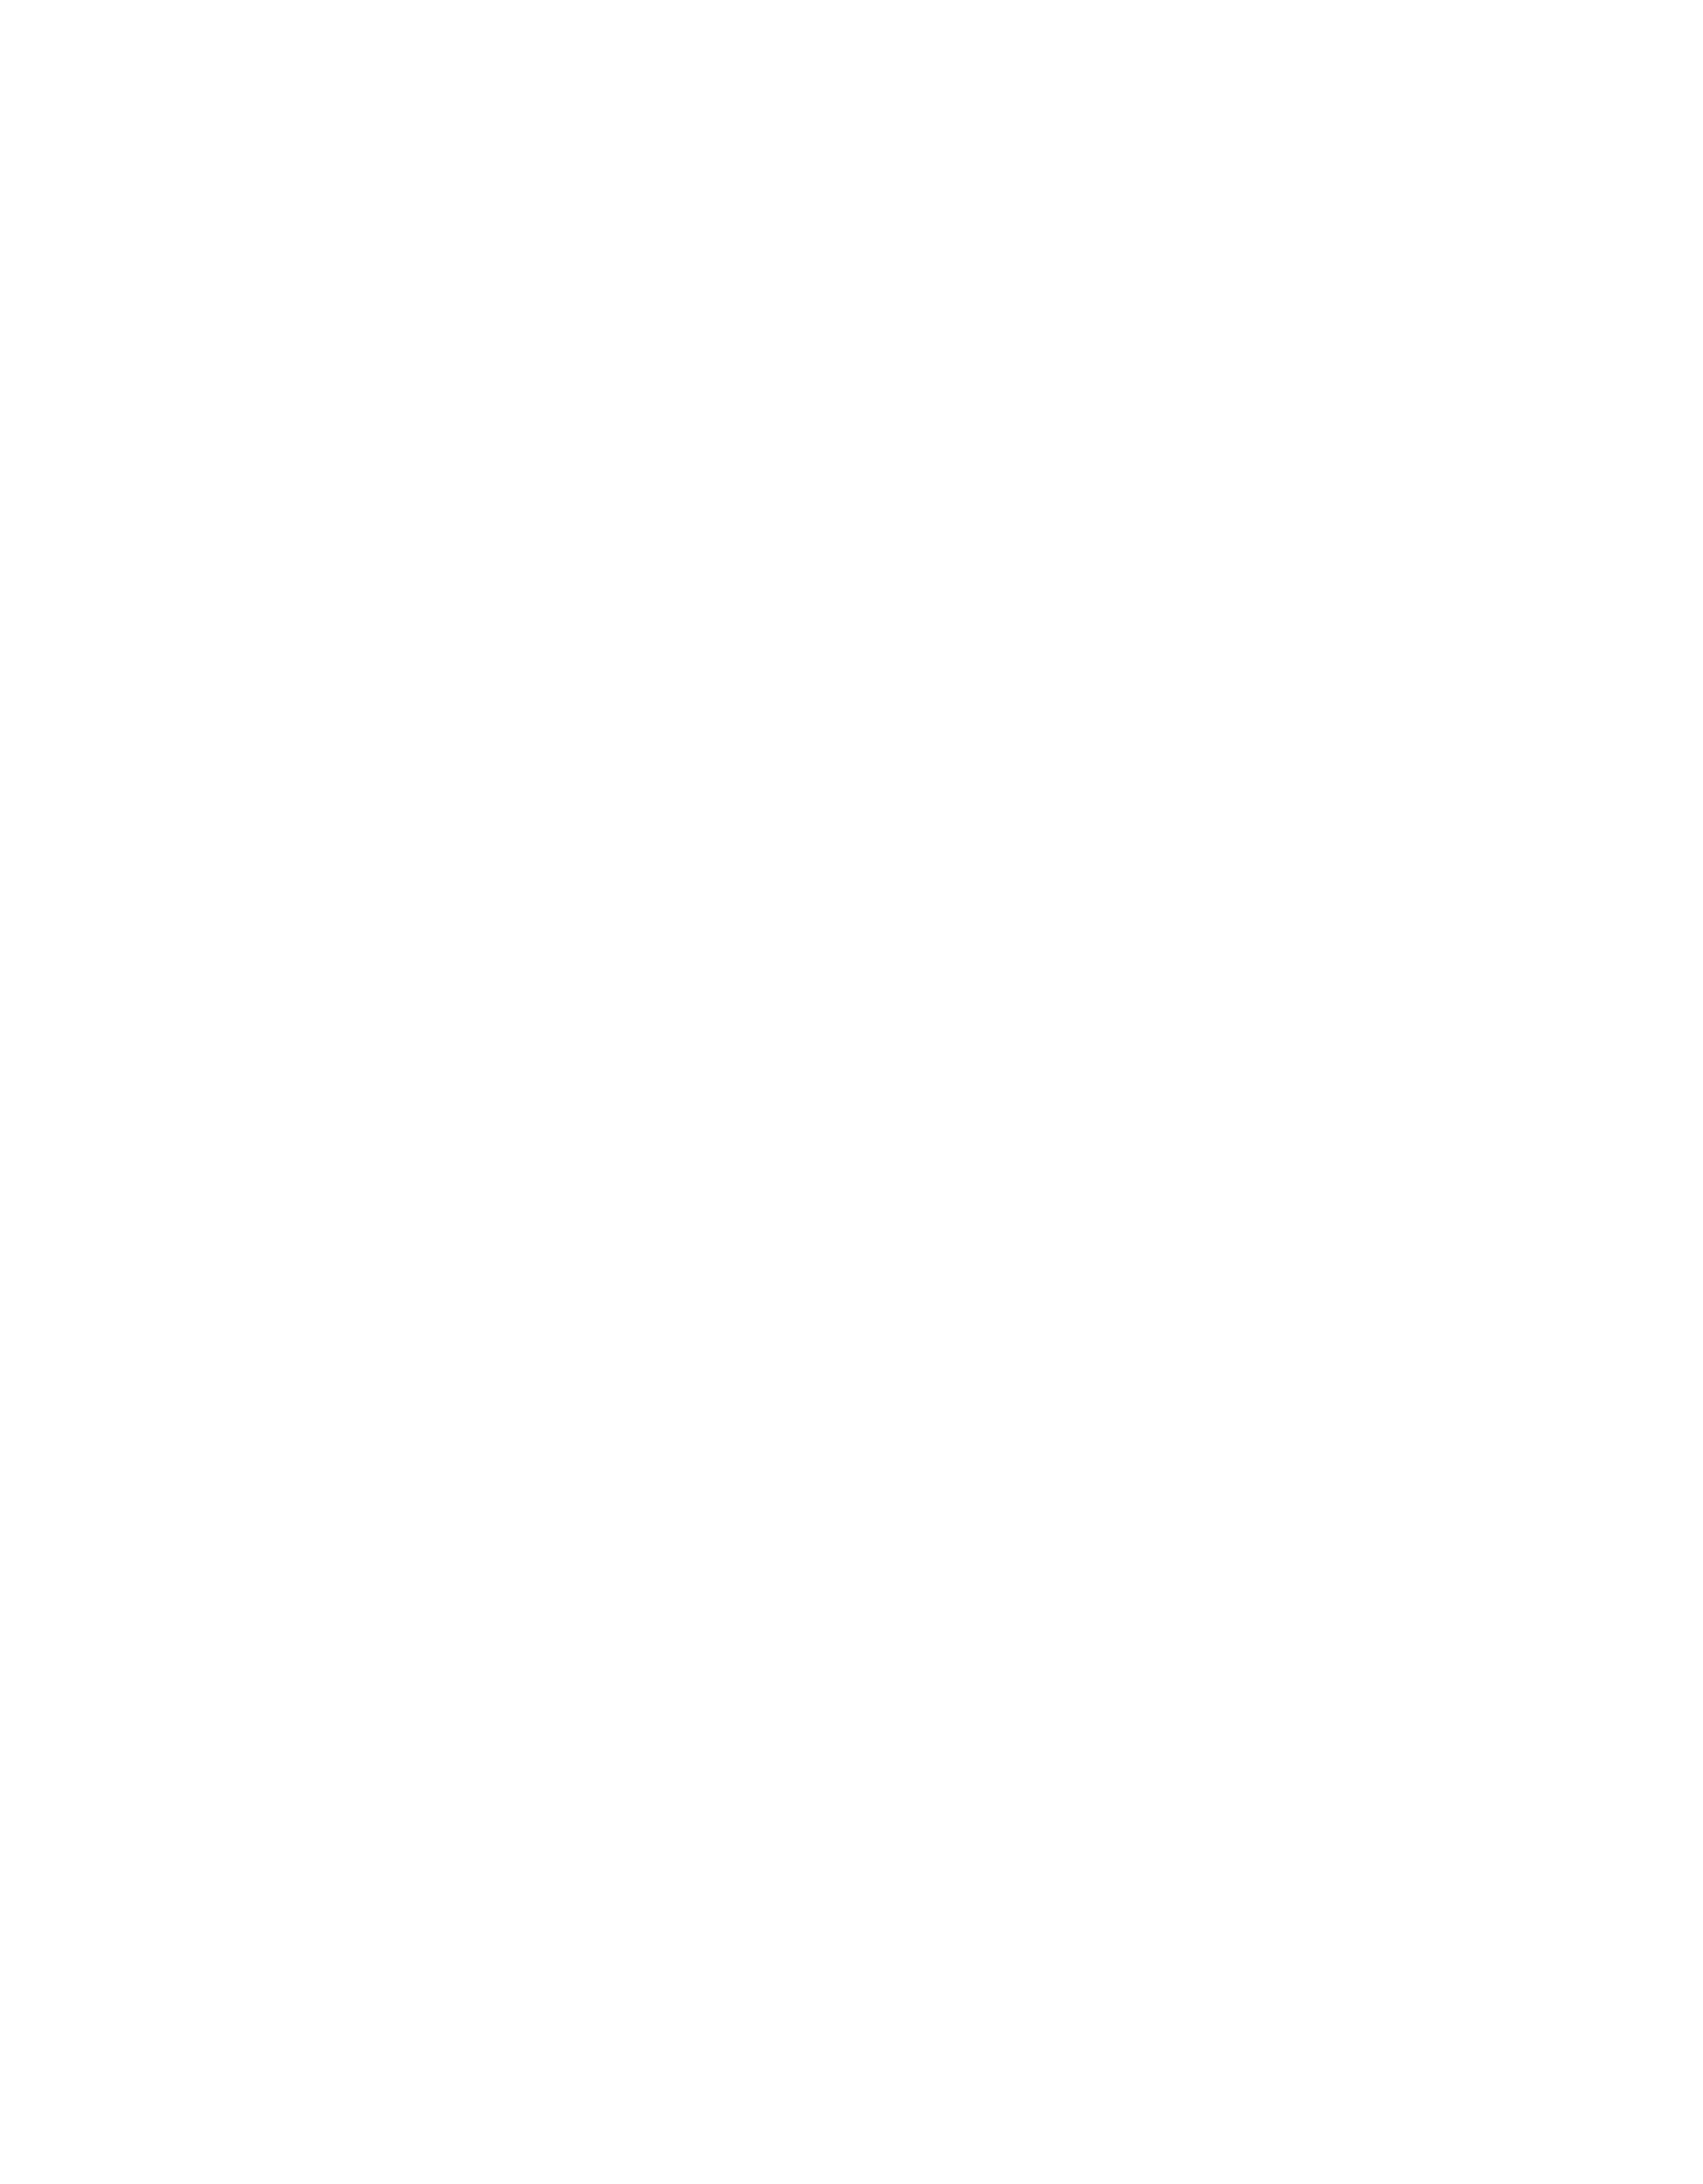 Winter Tree Silhouette Transparent PNG Clip Art Image.